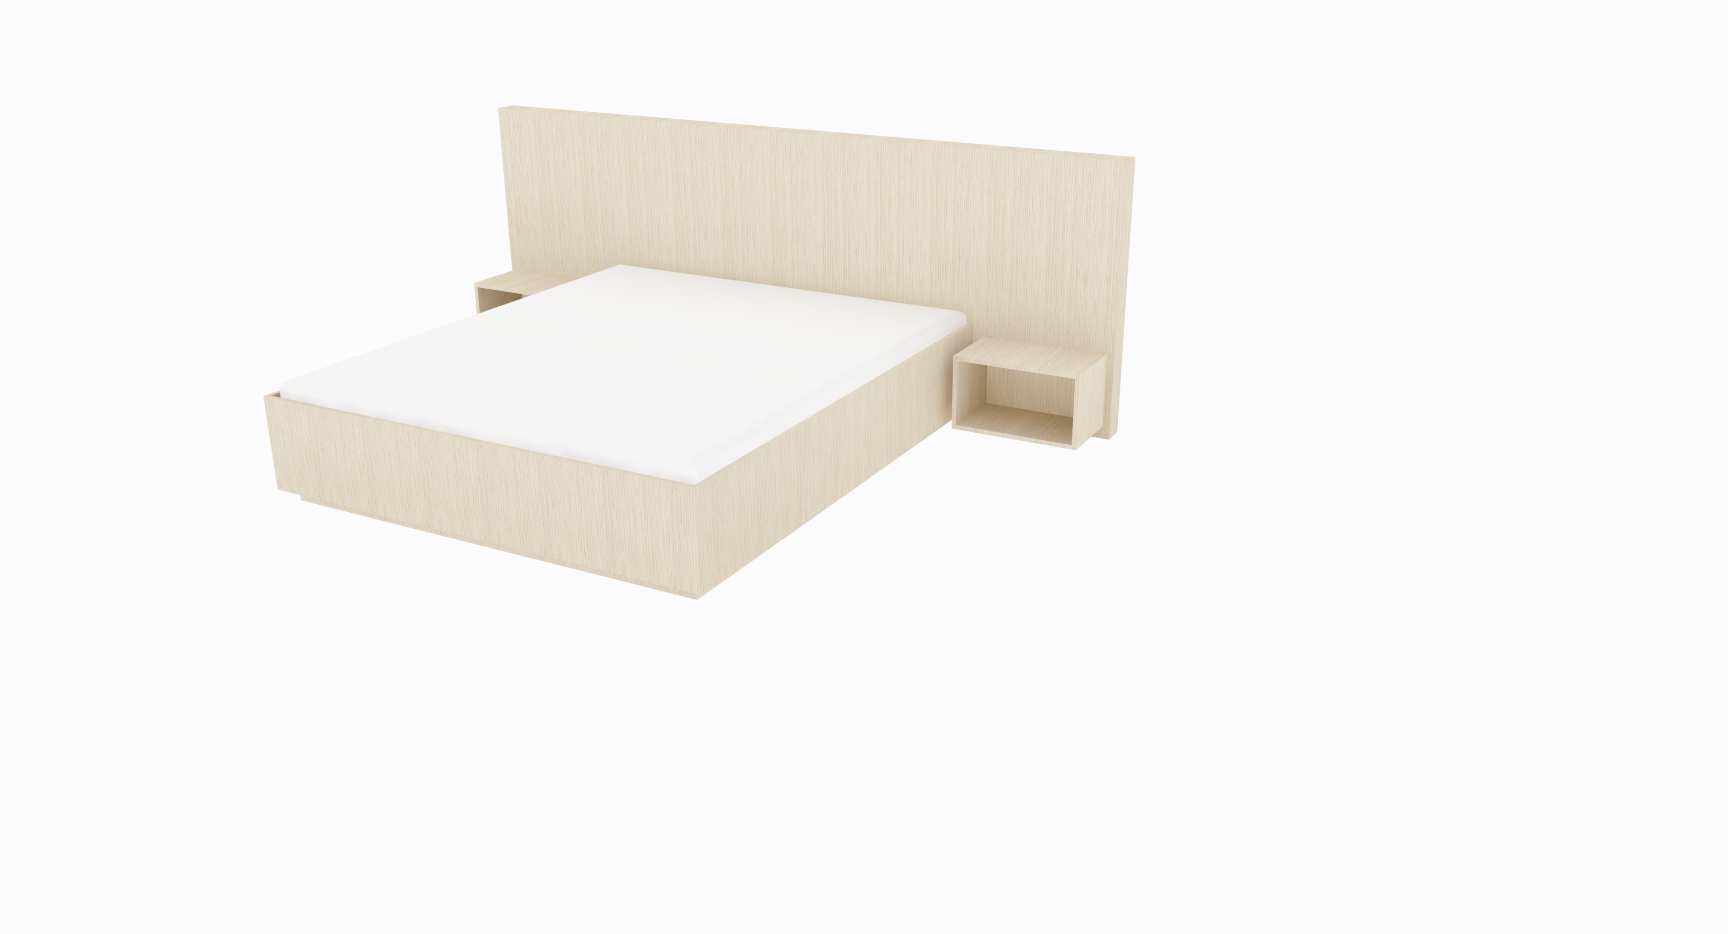 PLATA   Description :  Bed in oak veneer Mattress and bedside tables excluded (other finishes/sizes on demand)   Size (LxWxH) :  260 x 213 x 45/110 cm Mattress 140 x 200 cm  280 x 213 x 45/110 cm Mattress 160 x 200 cm  300 x 213 x 45/110 cm Mattress 180 x 200 cm